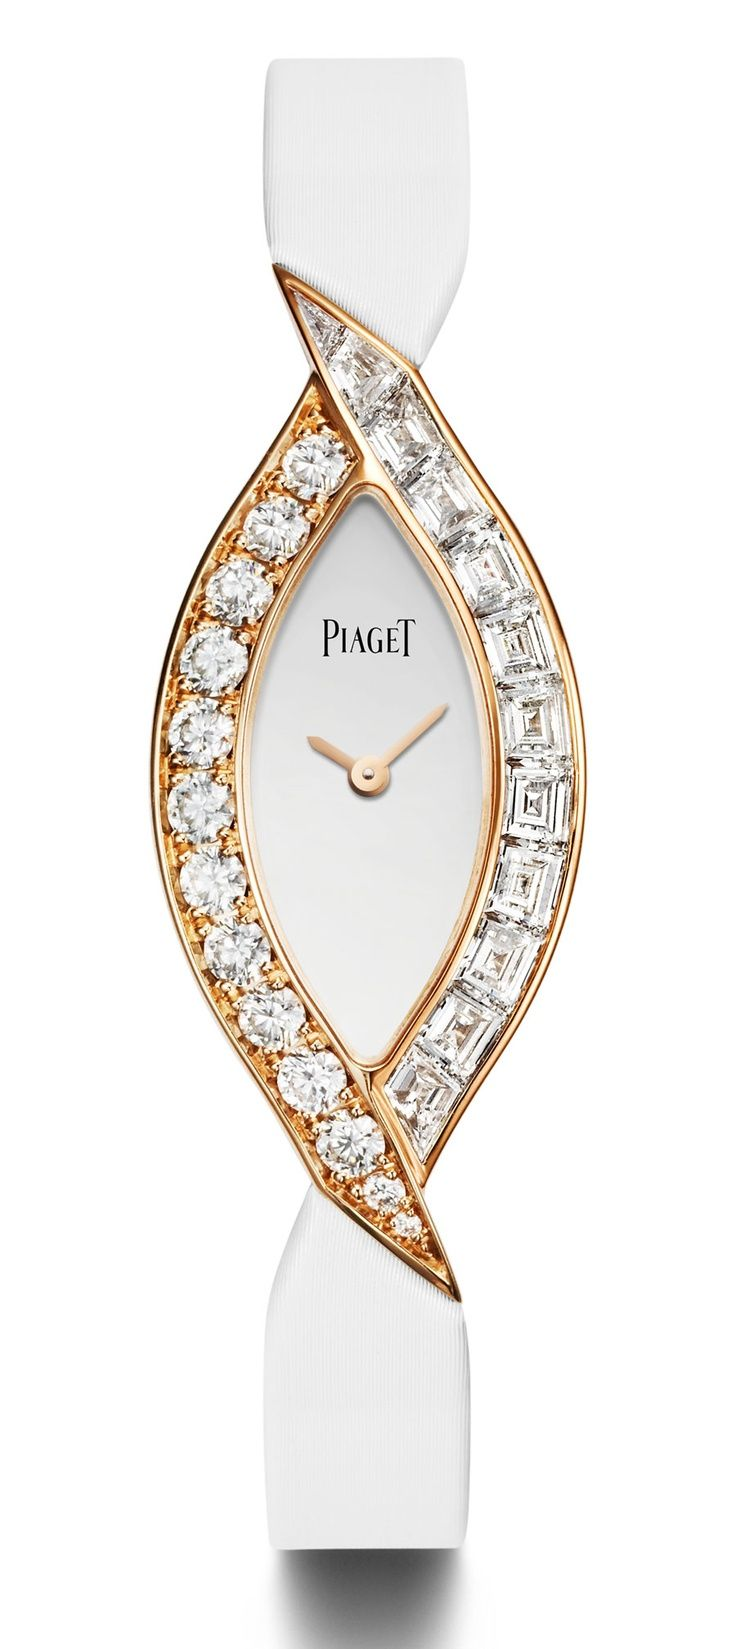 Piaget Couture Précieuse diamond and rose gold jeweller watch